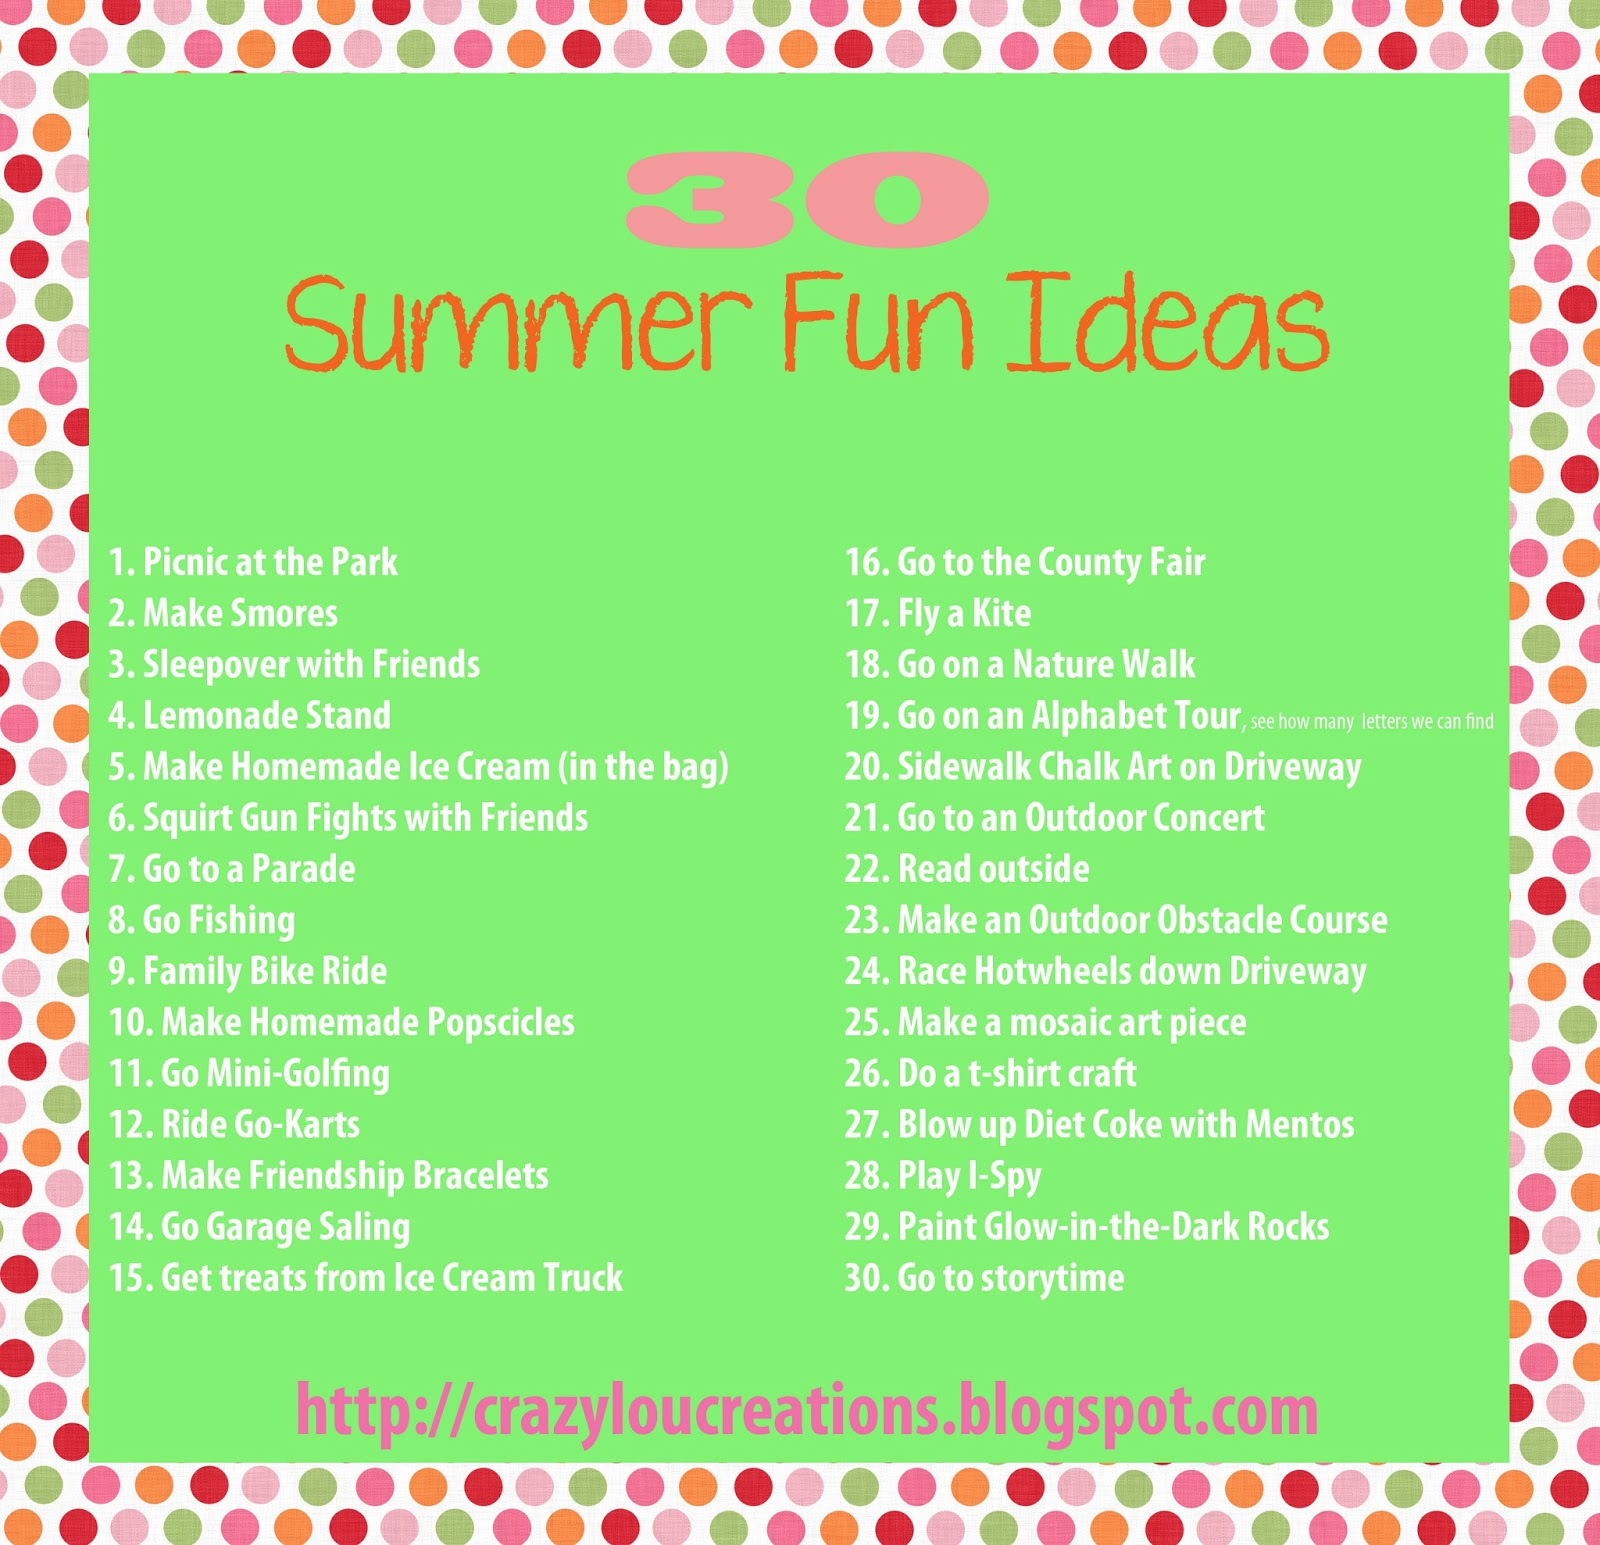 Amazing Summer: Crazylou: SUMMER FUN!! Ideas To Keep The Kids Busy